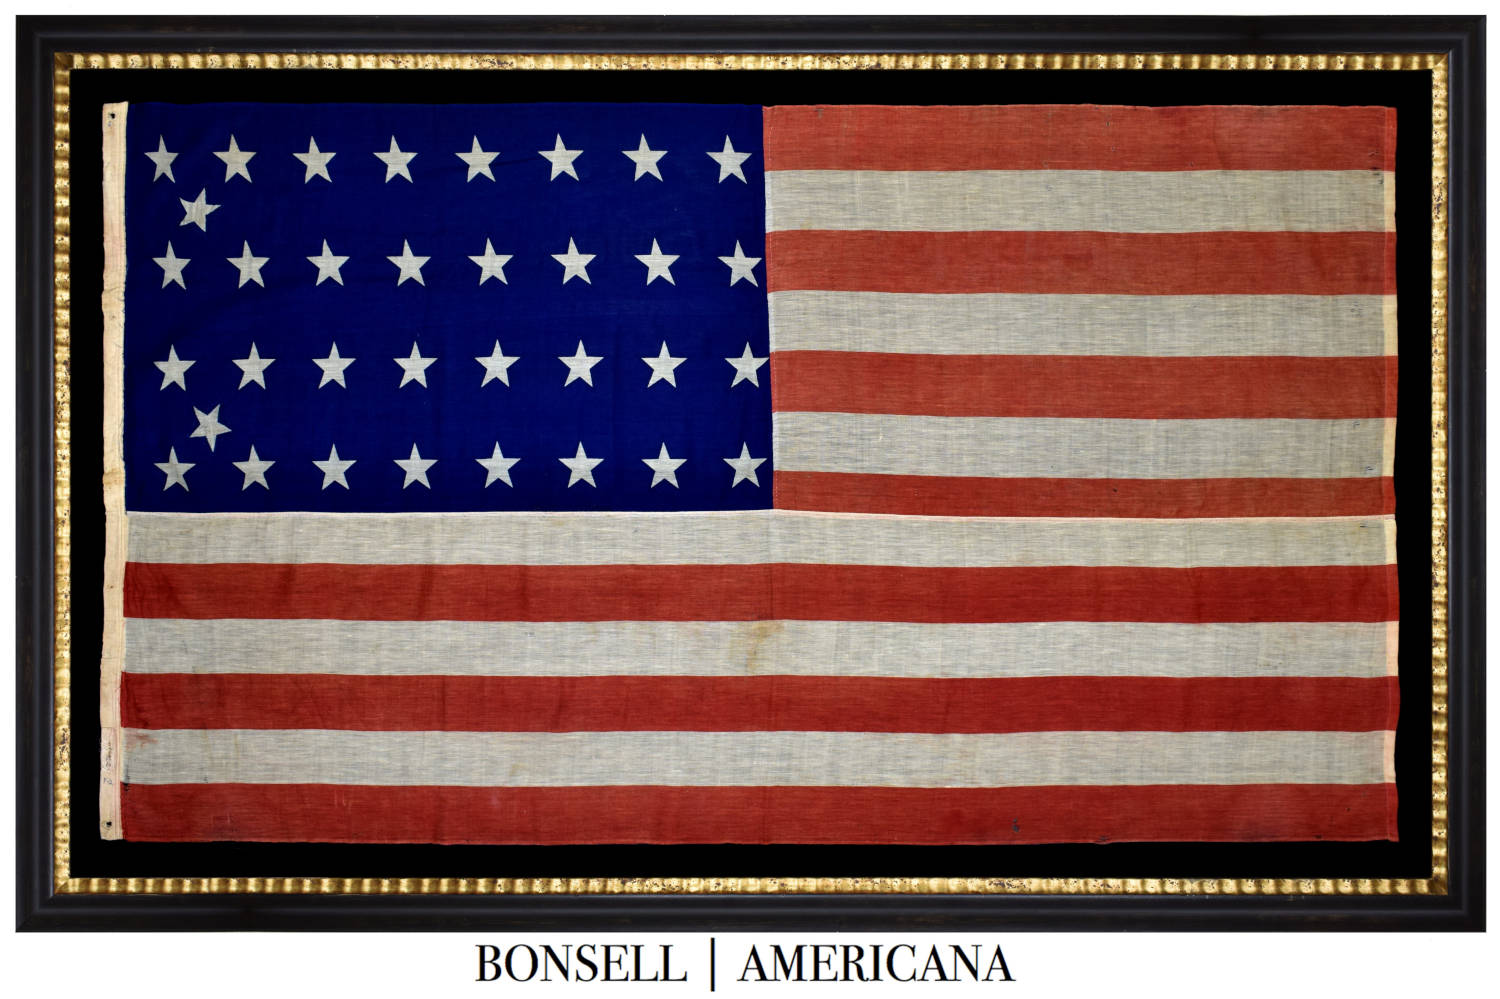 34 Star Antique Flag | Civil War Era